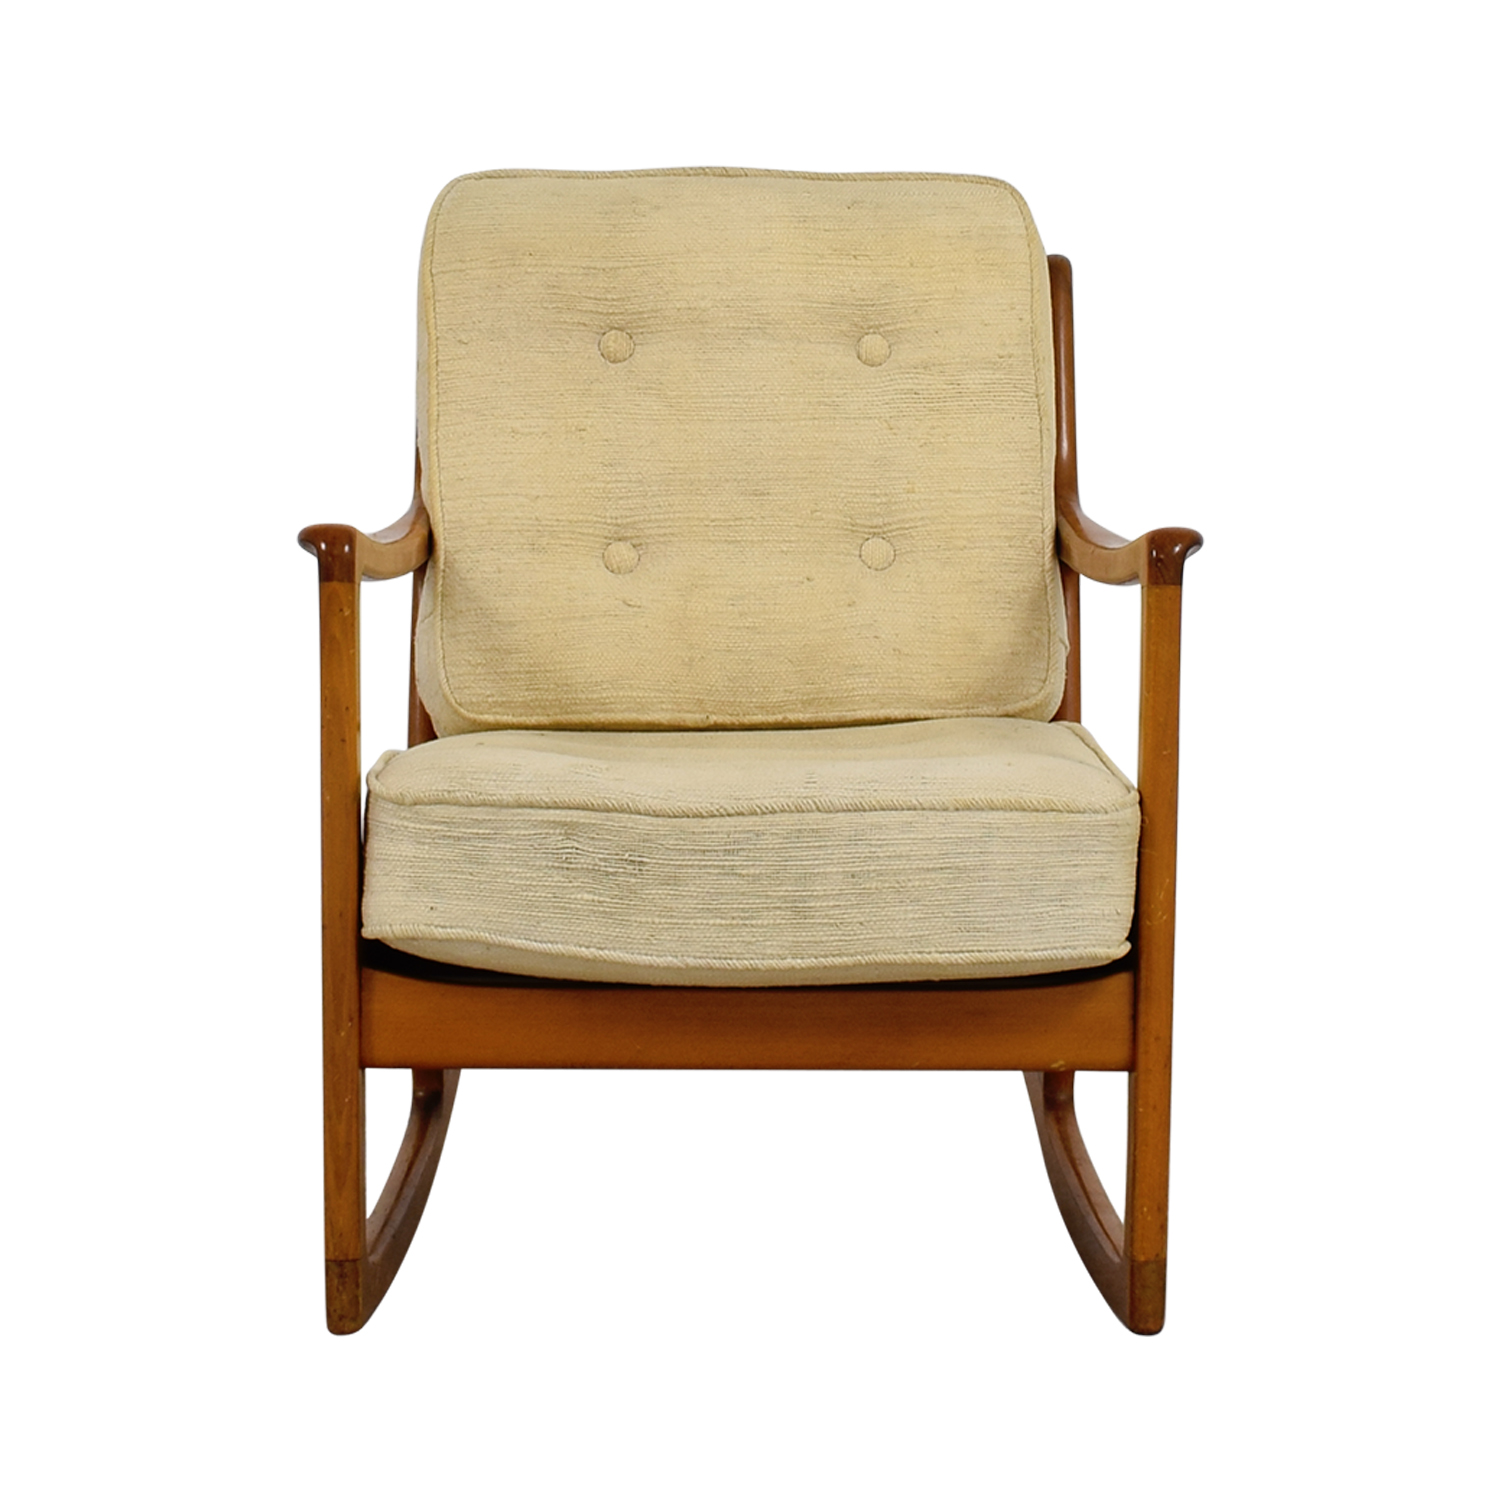 Merveilleux Shop John Stuart Inc Mid Century Danish Beige Teak Rocking Chair John  Stuart Inc ...